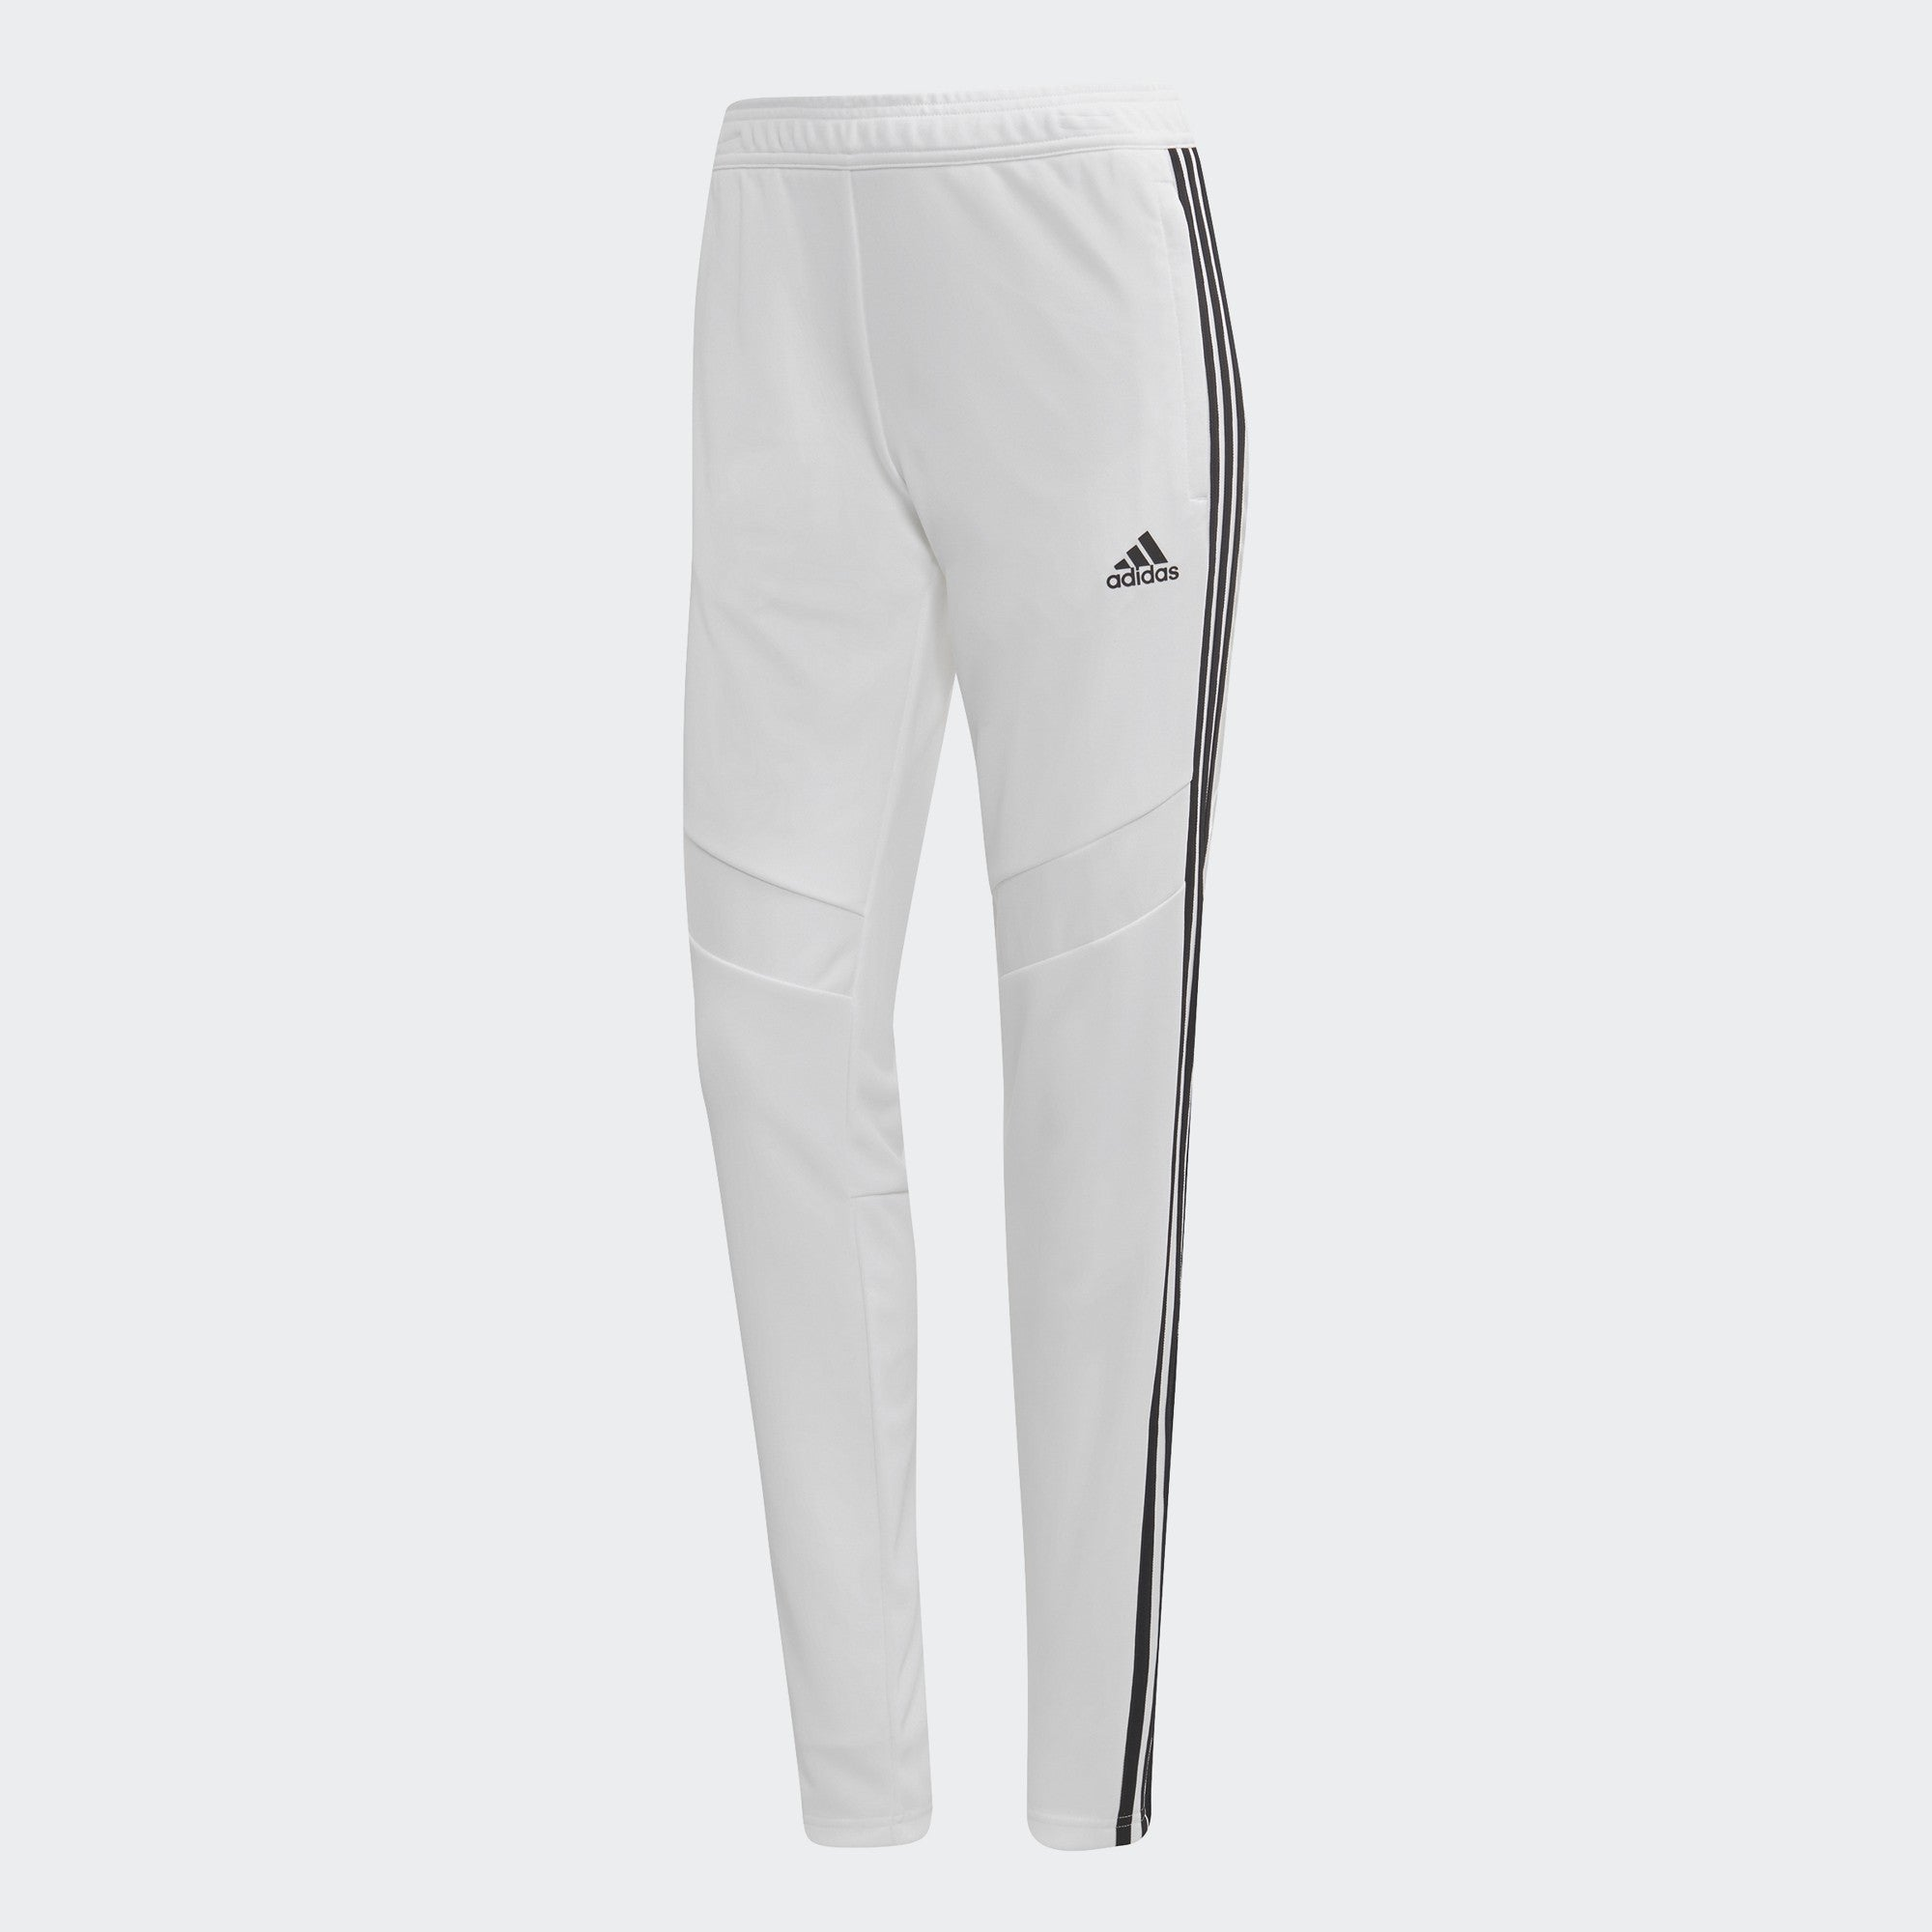 Women's Tiro 19 Training Pants - White/Black